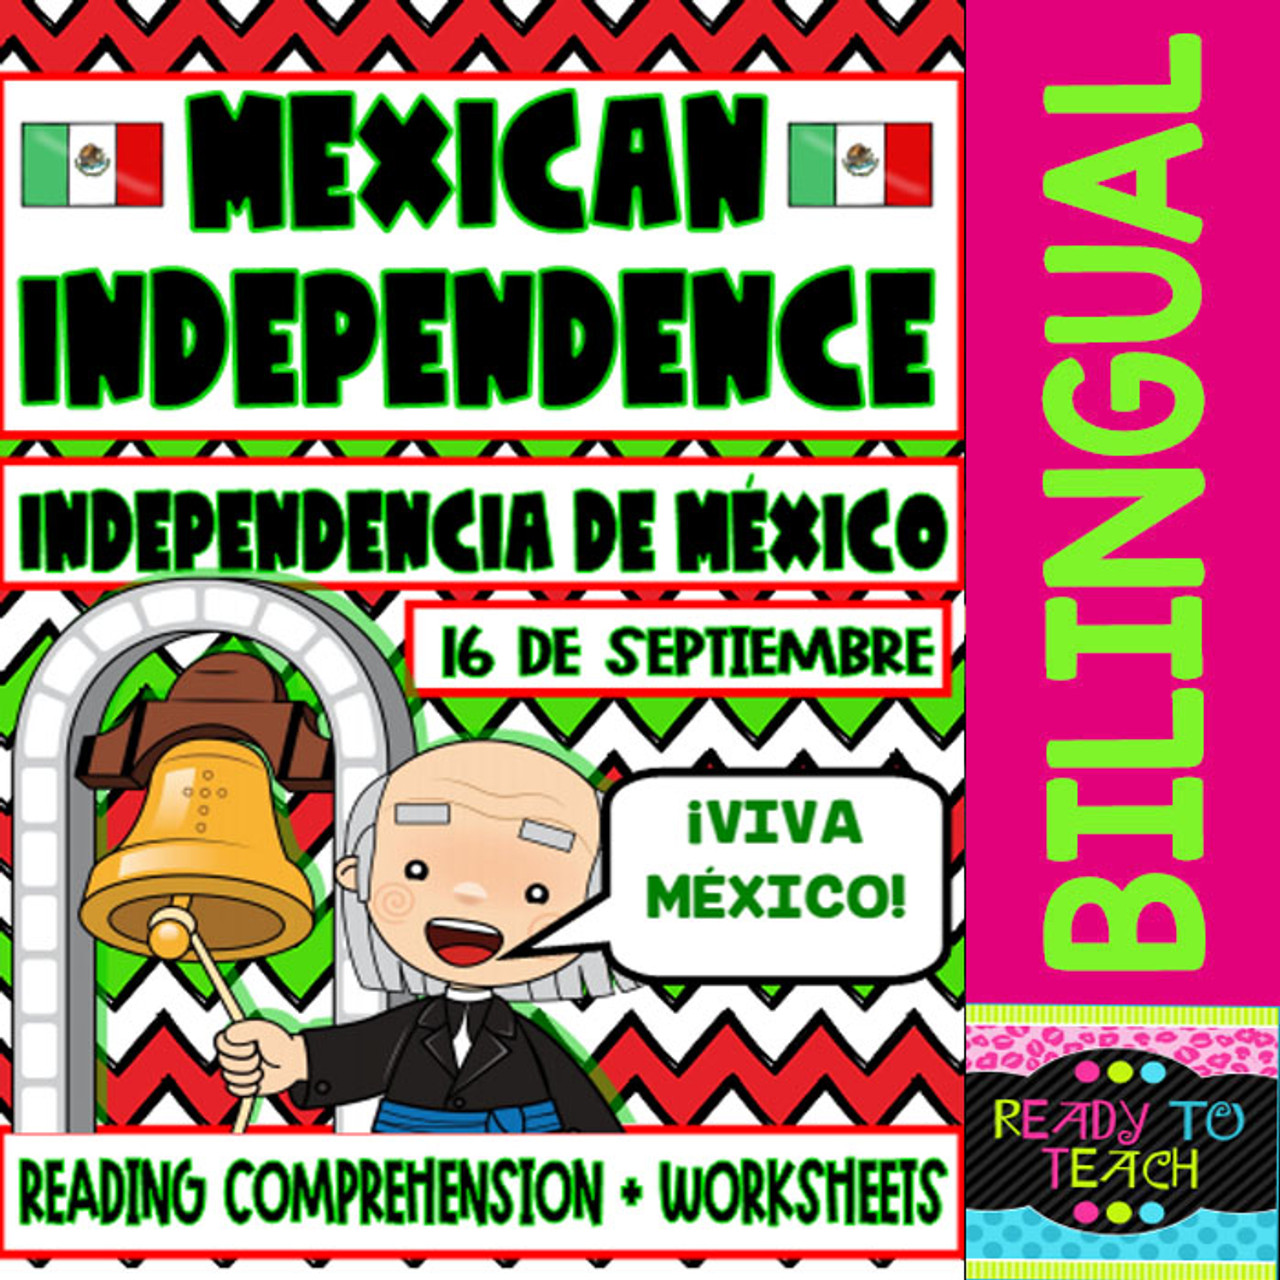 medium resolution of Mexican Independence - Independencia de Mexico - Reading and Worksheets -  Bilingual - Amped Up Learning